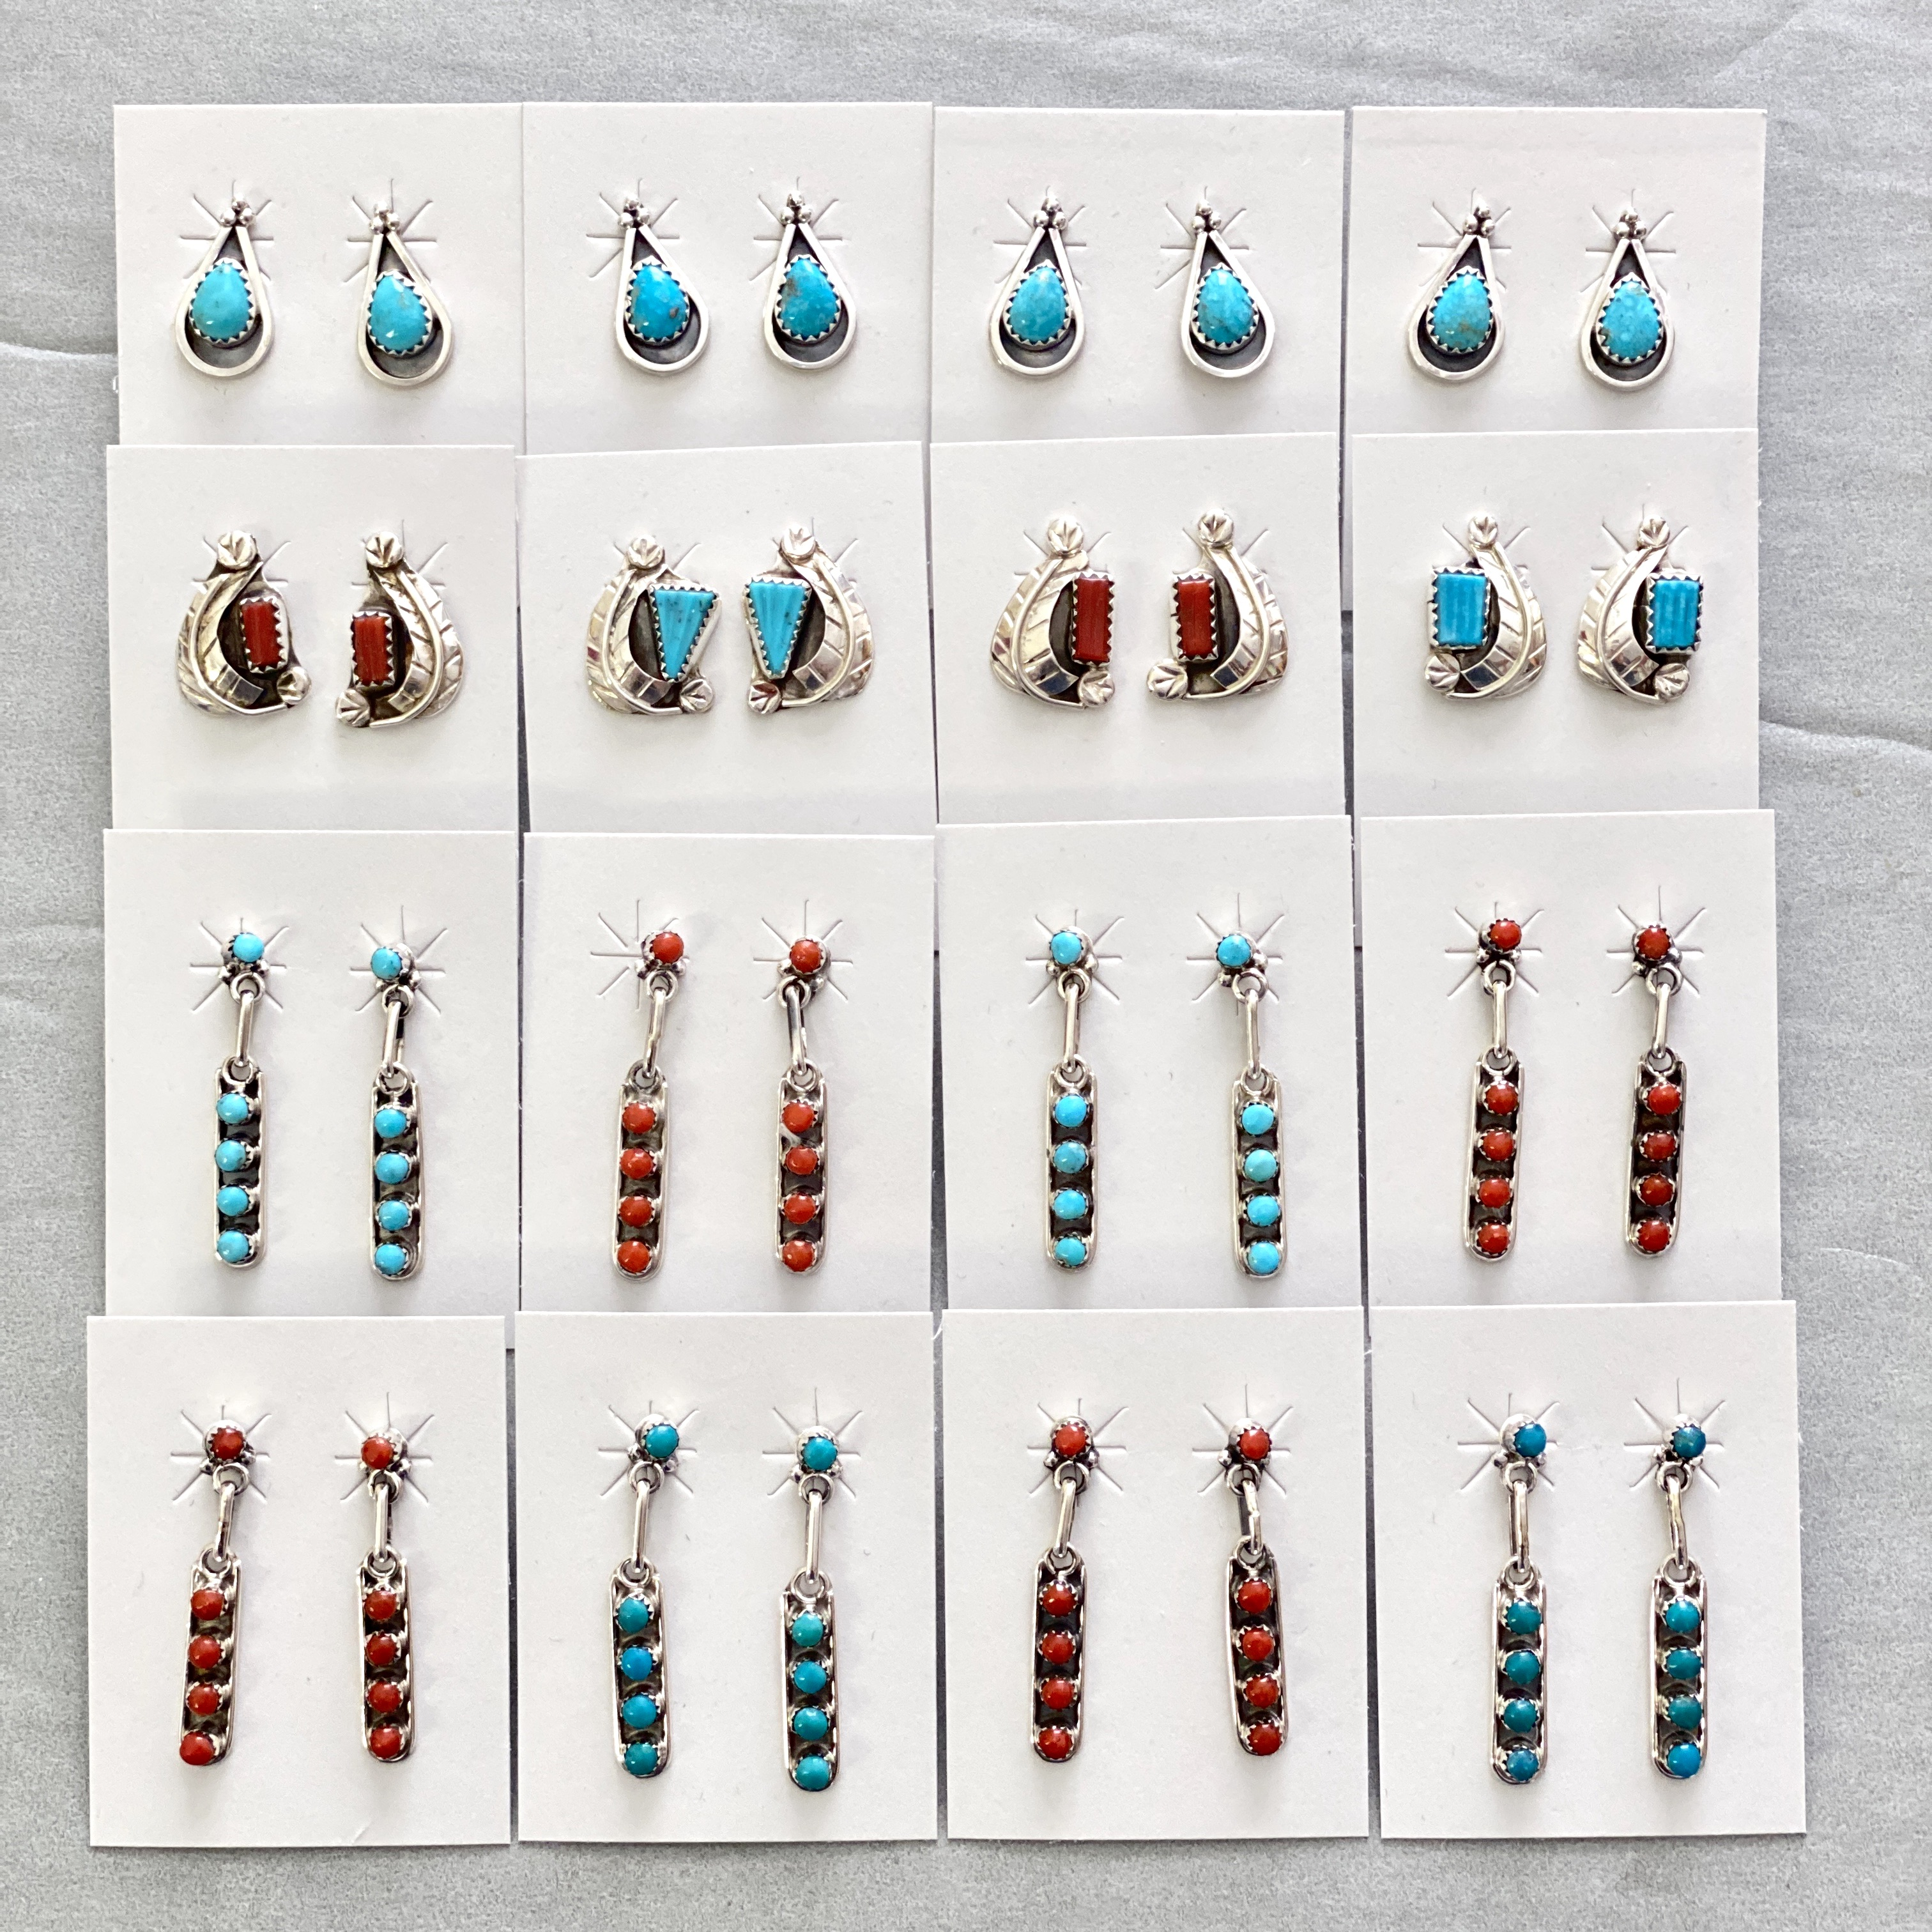 Small turquoise/coral styles